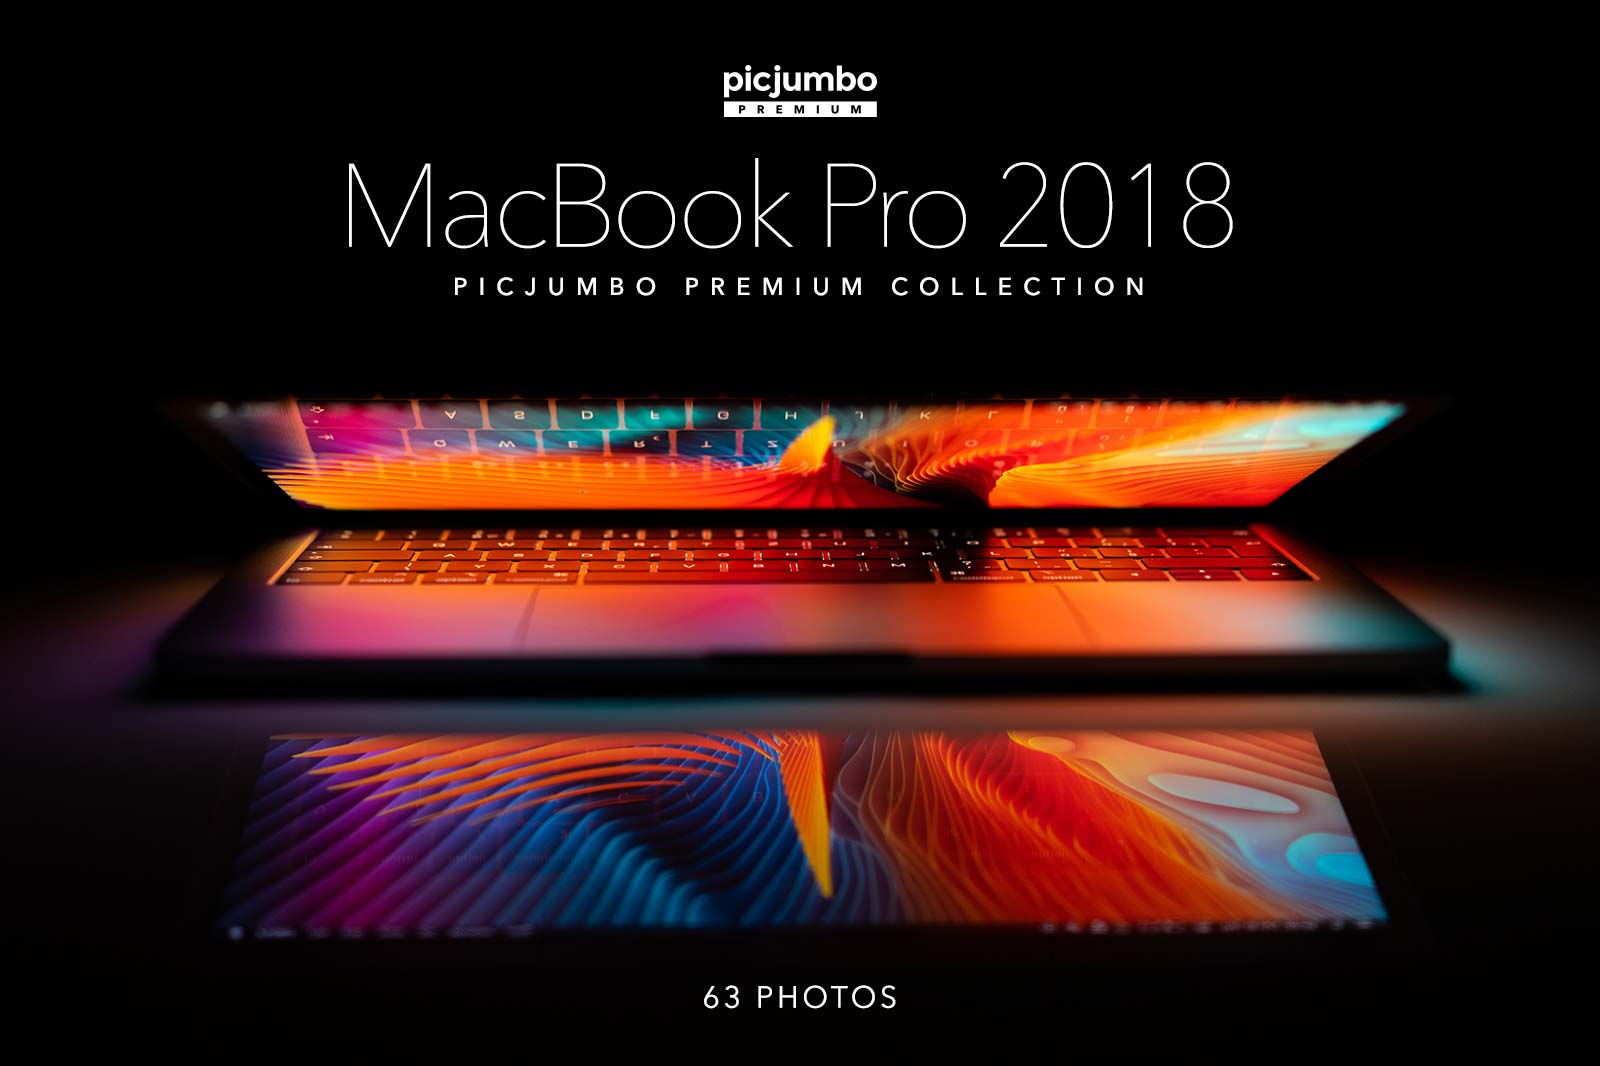 Click here to see MacBook Pro 2018 PREMIUM Collection!